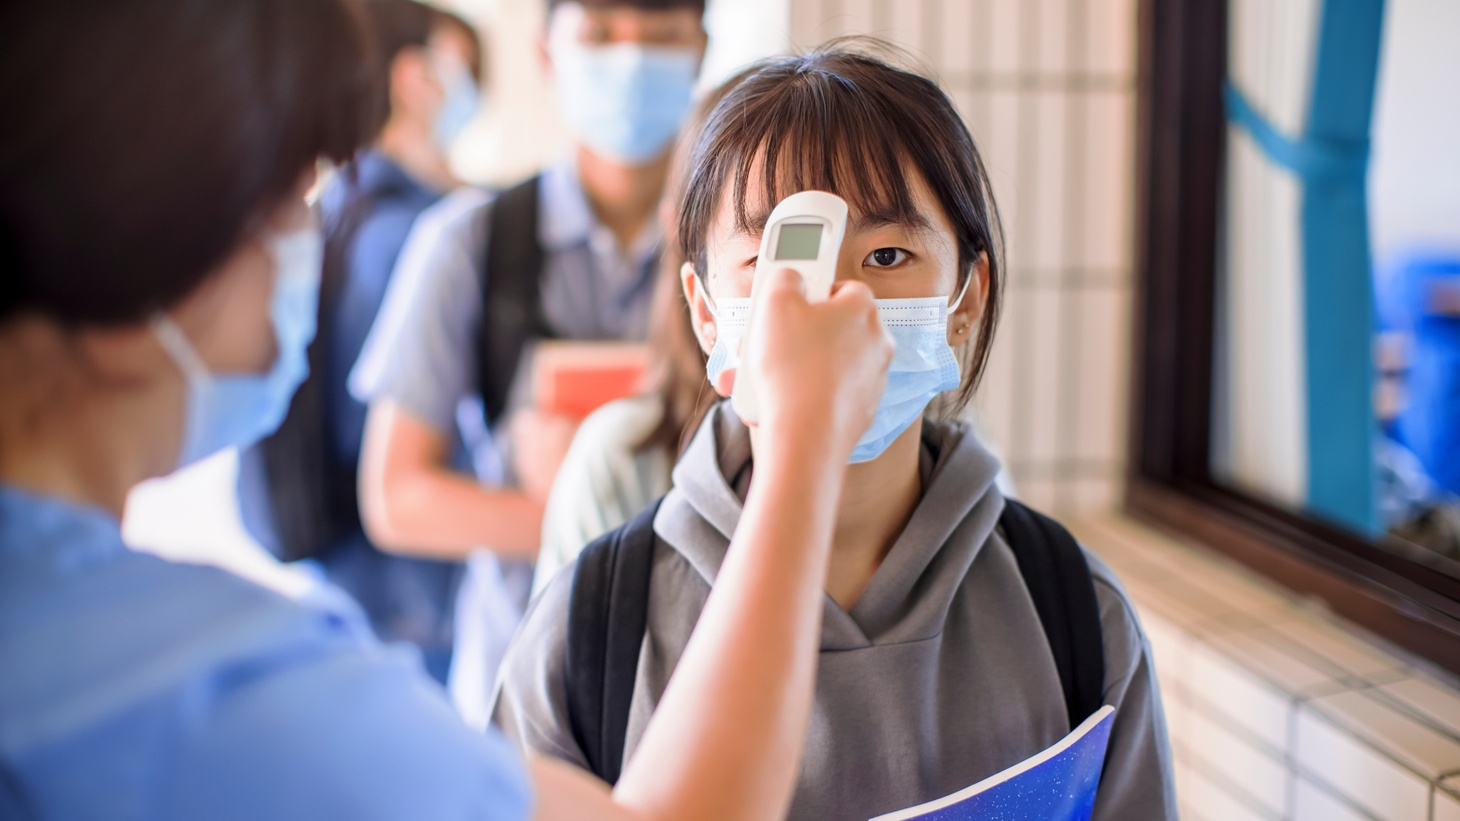 Can temperature screenings help protect children from the coronavirus when LAUSD resumes in-person instruction this month?